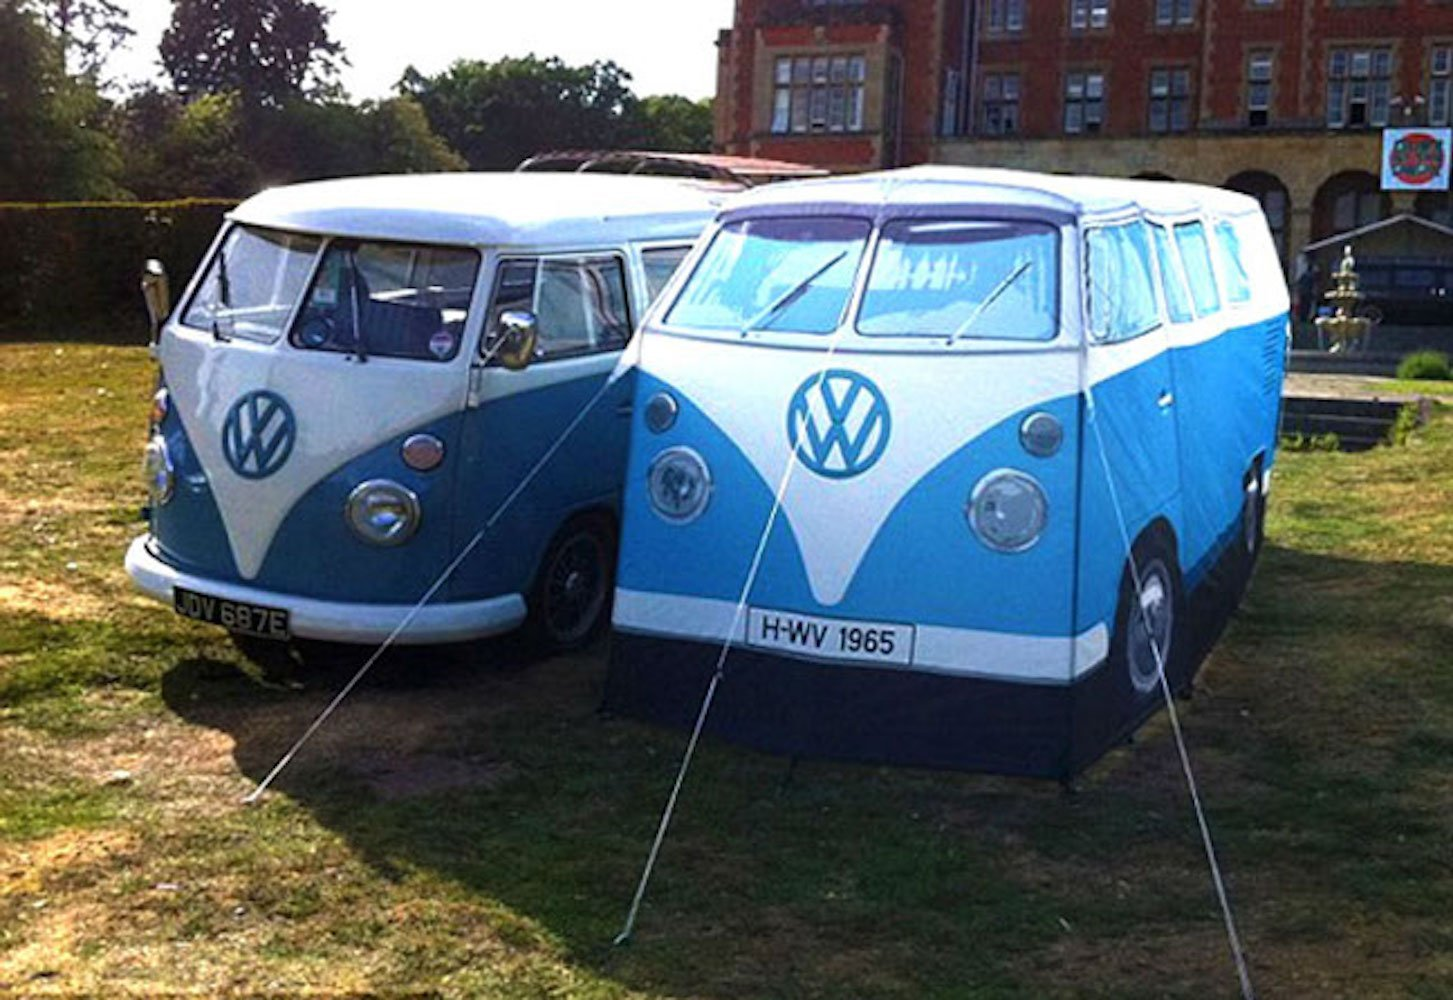 Amazon.com  VW Volkswagen T1 C&er Van Adult C&ing Tent - Blue - Multiple Color Options Available  Sports u0026 Outdoors : vw bus tents - memphite.com